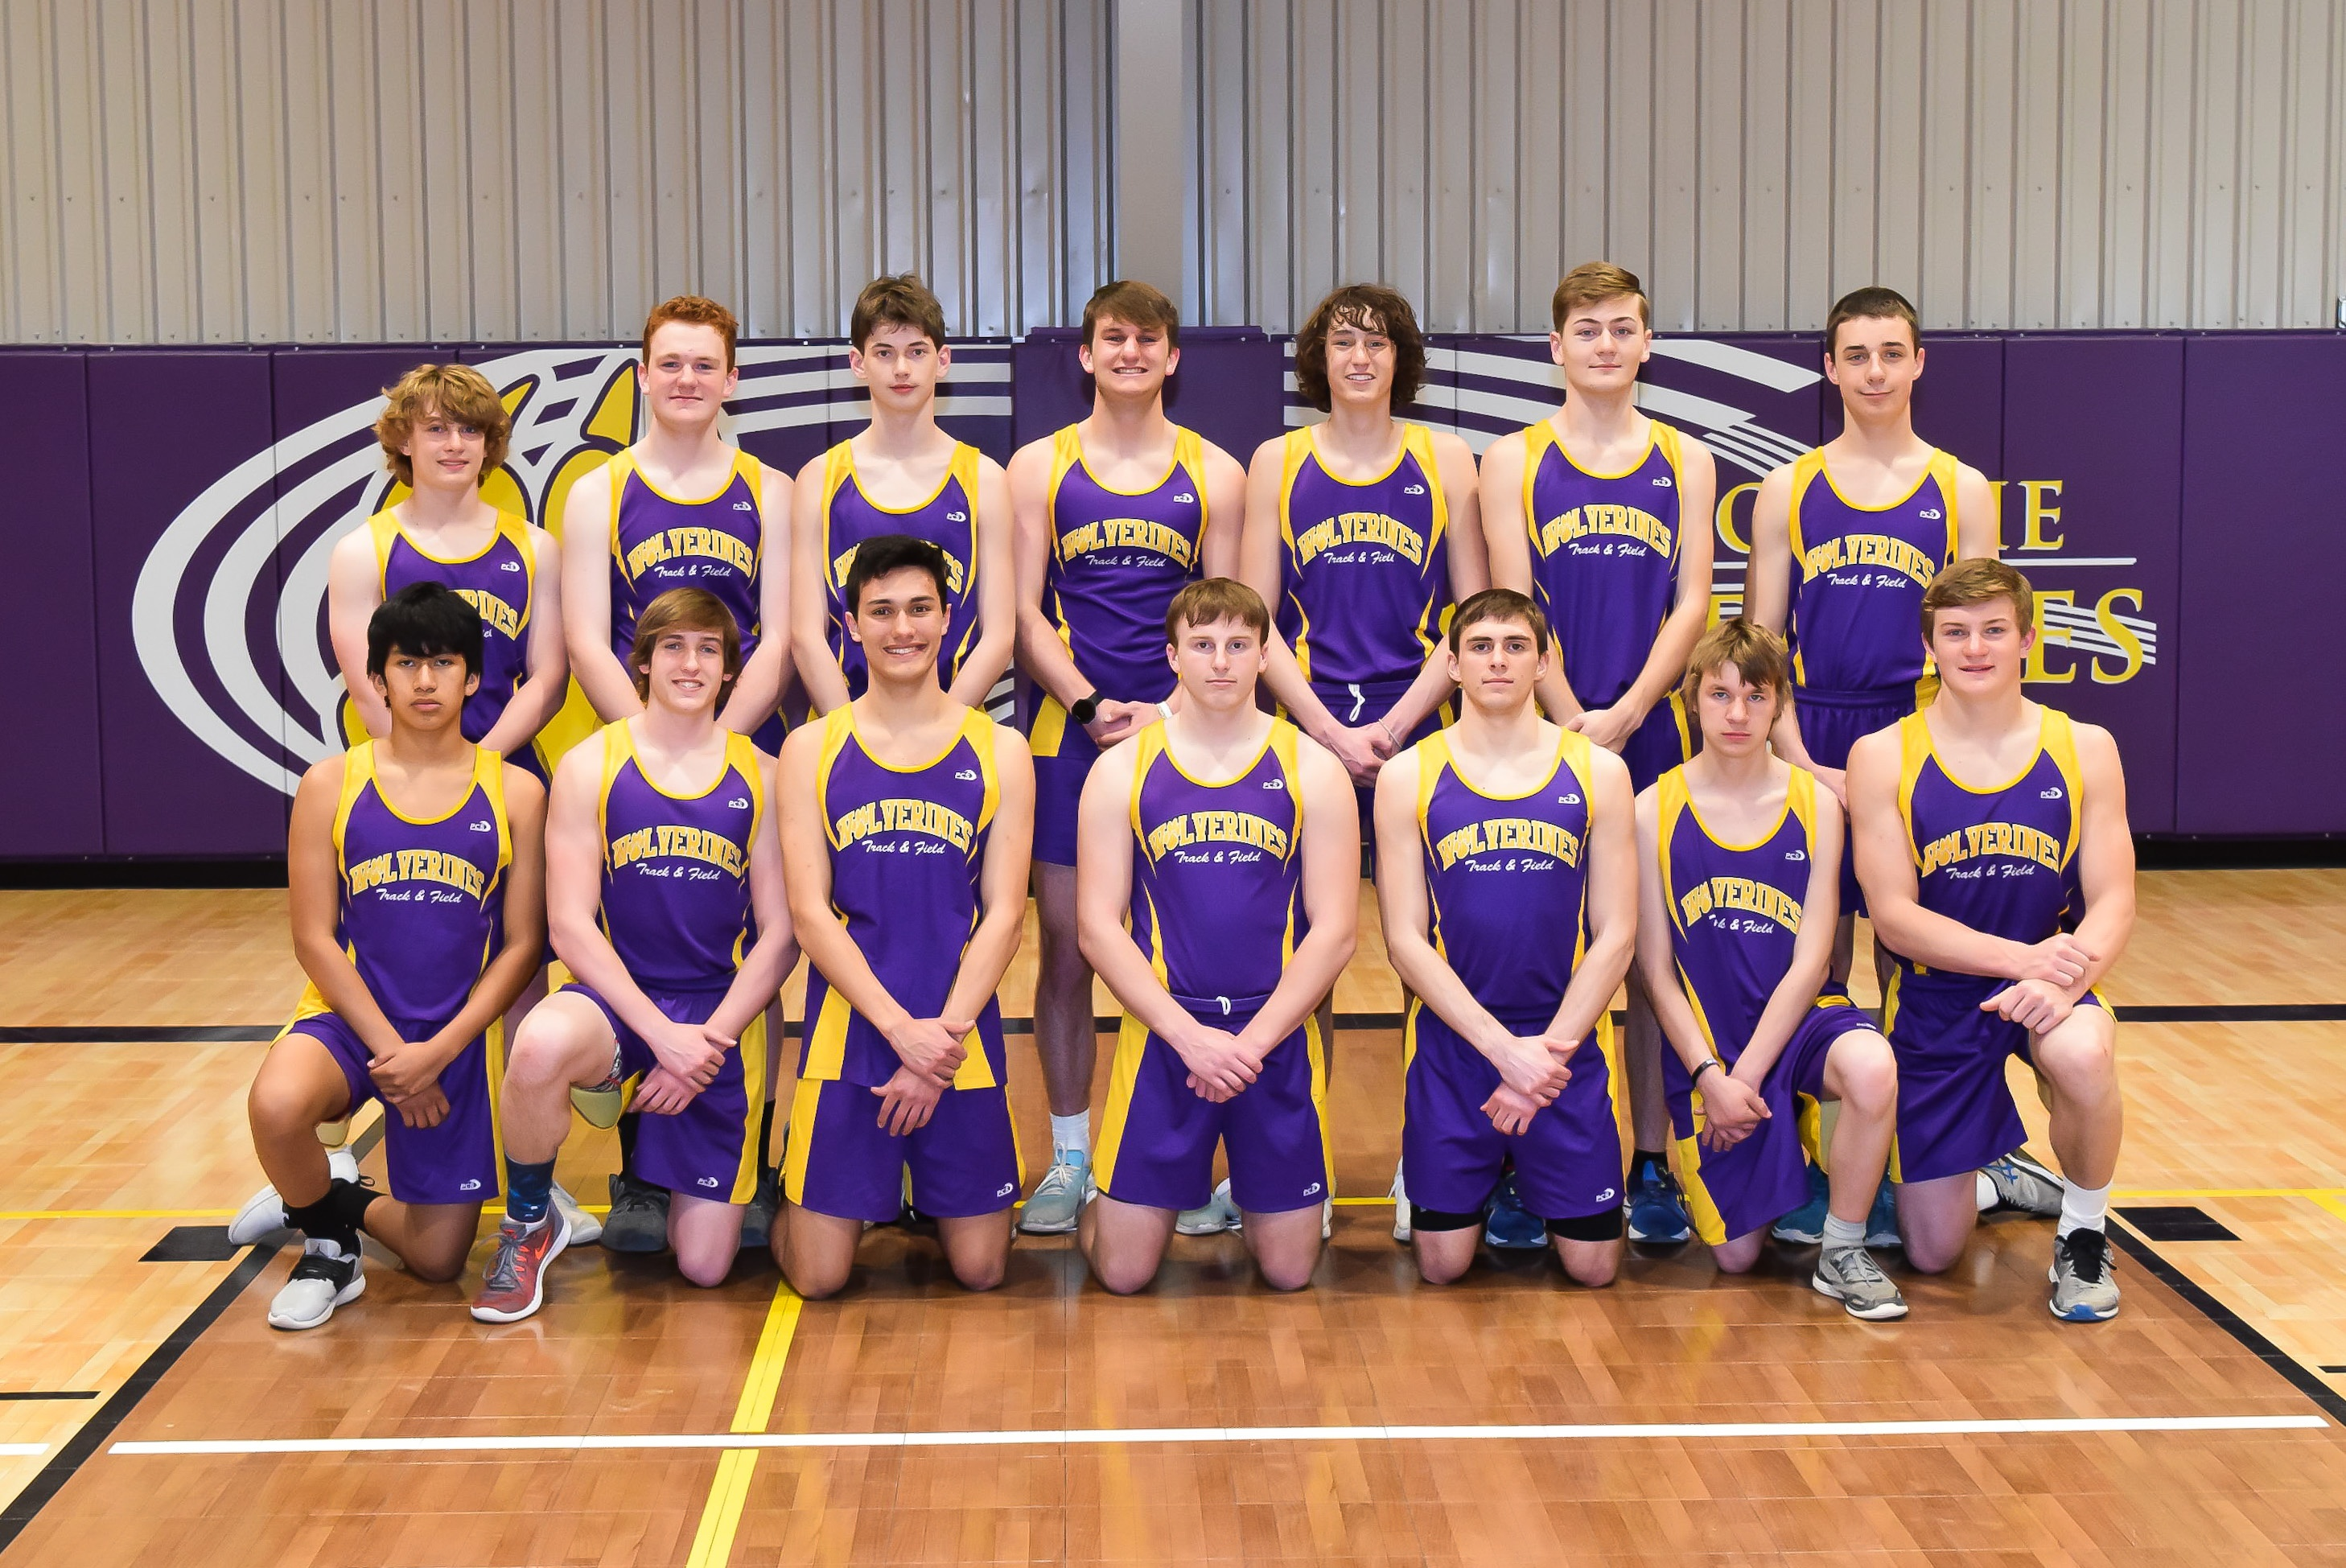 WBM Boys Track - Photo Courtesy of Lauren Fehr Photography